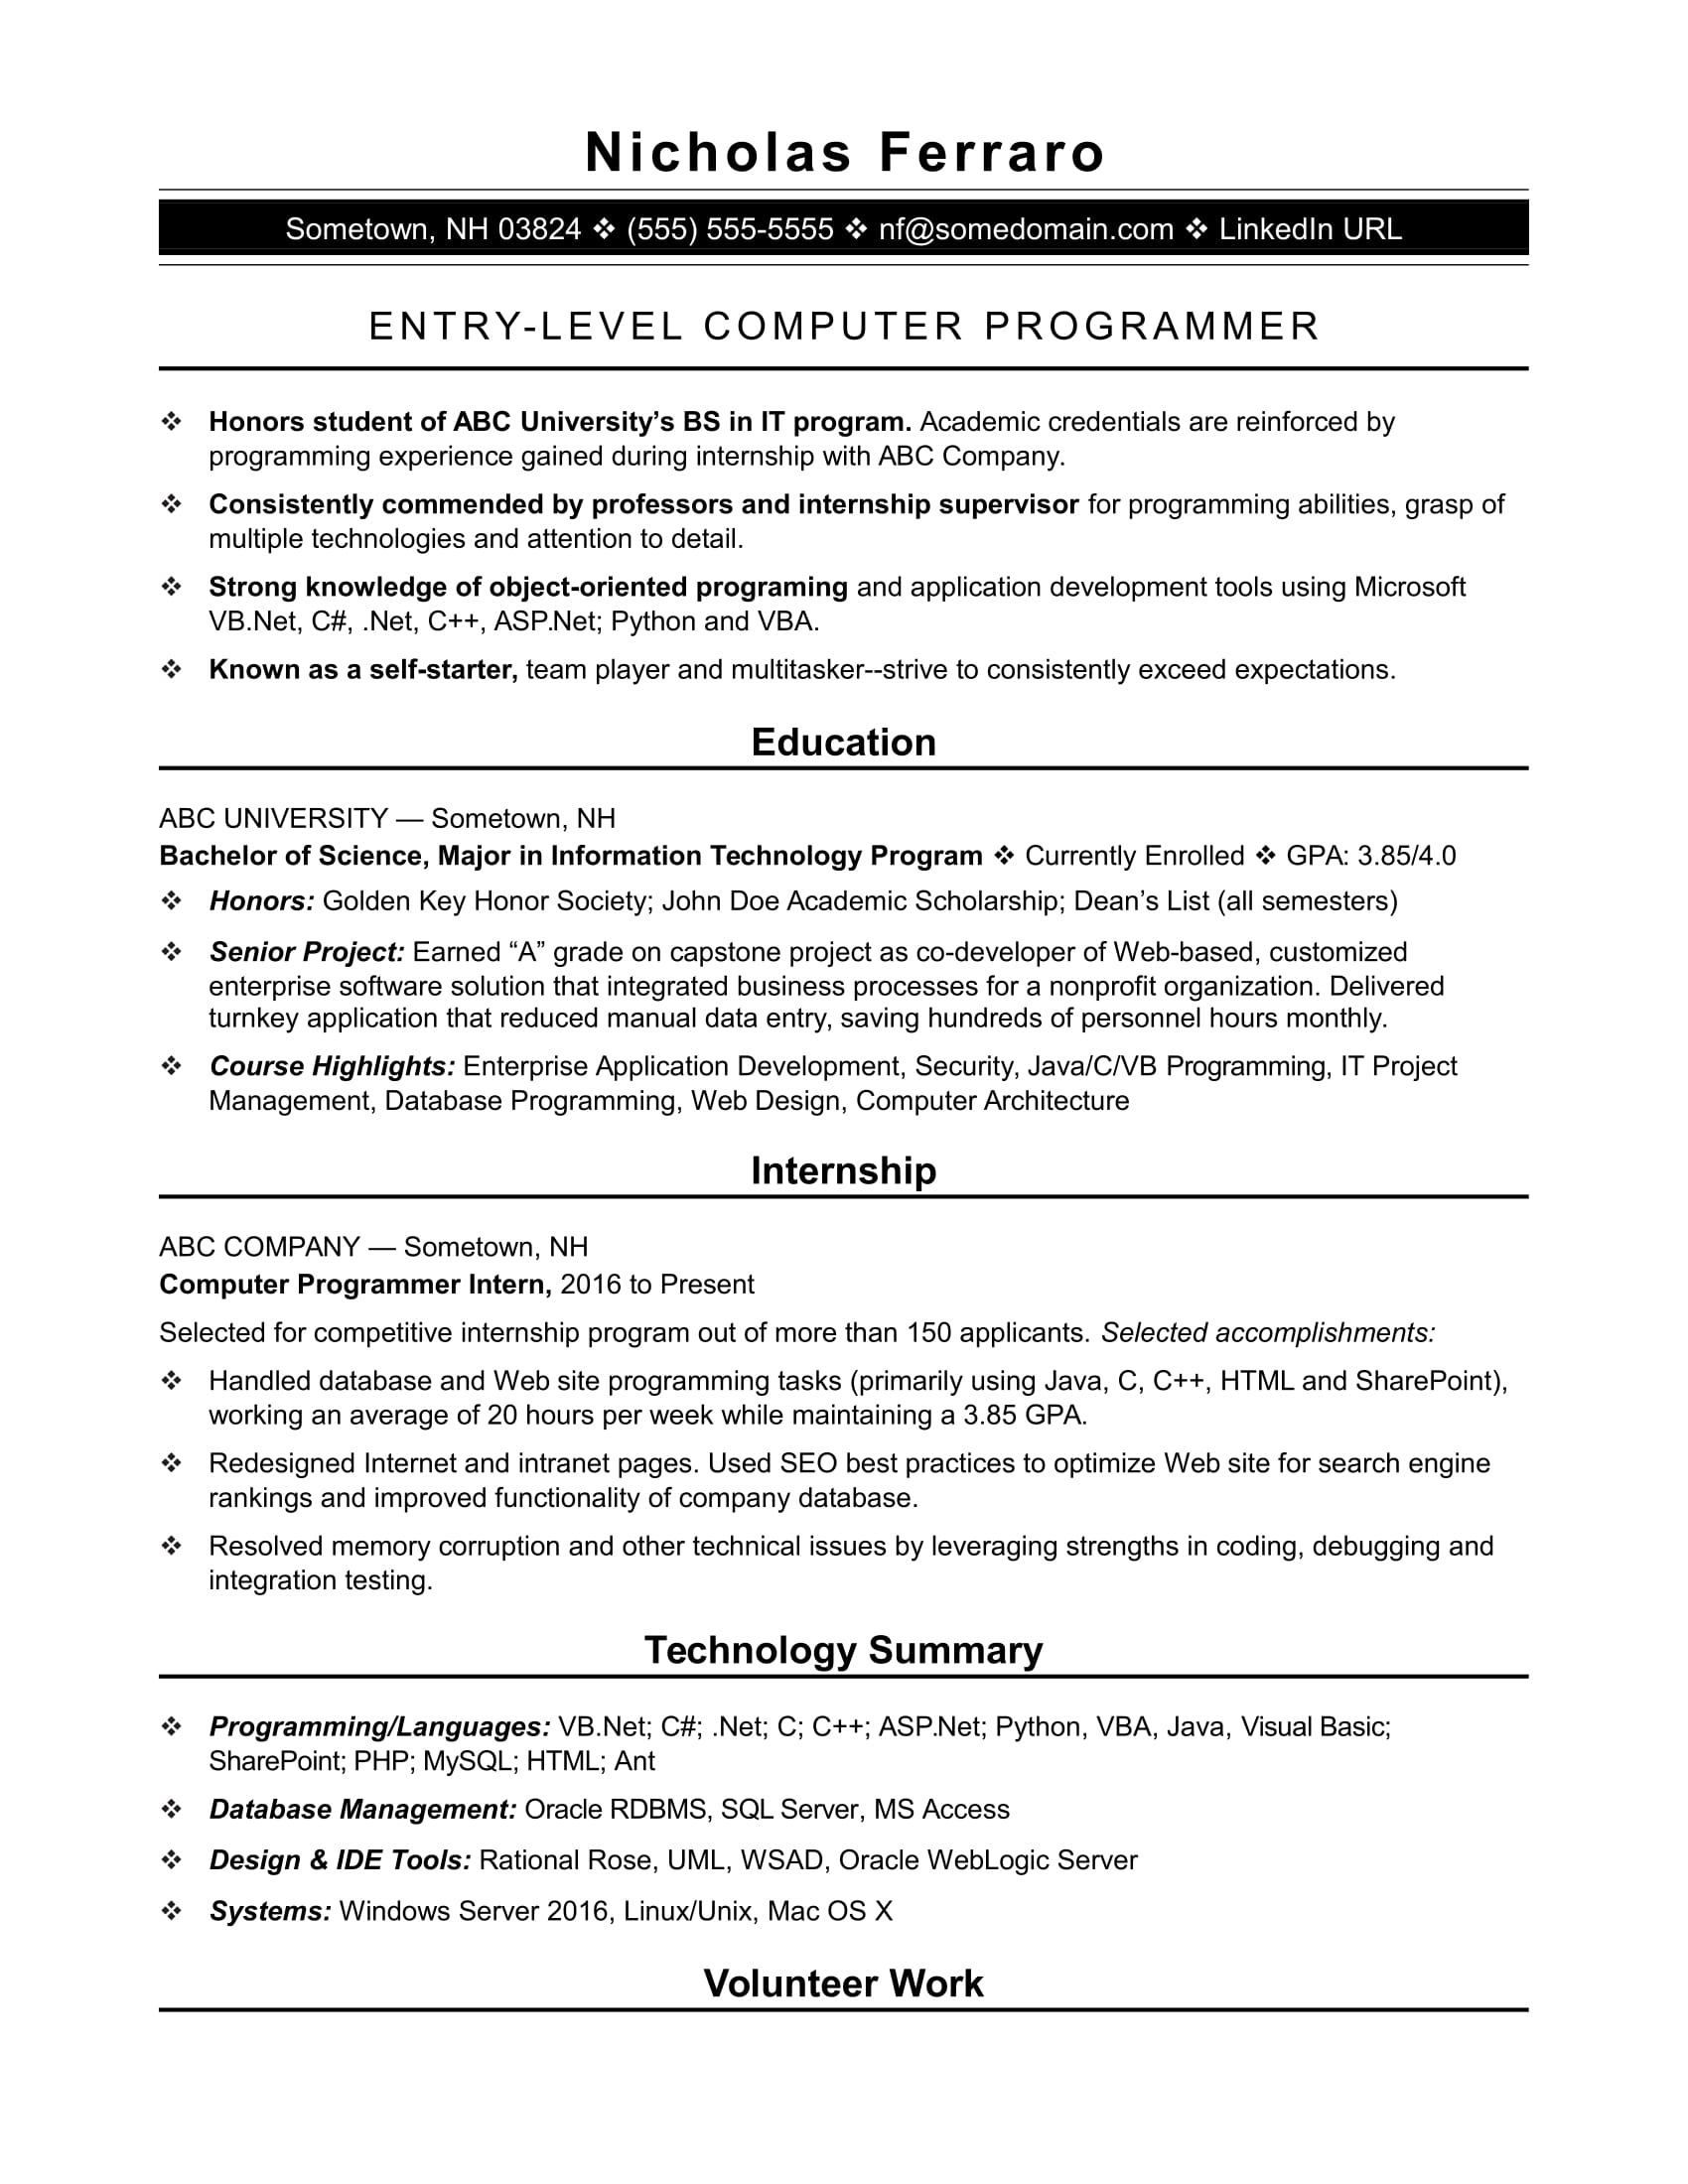 Sample Resume For An Entry-Level Computer Programmer ...